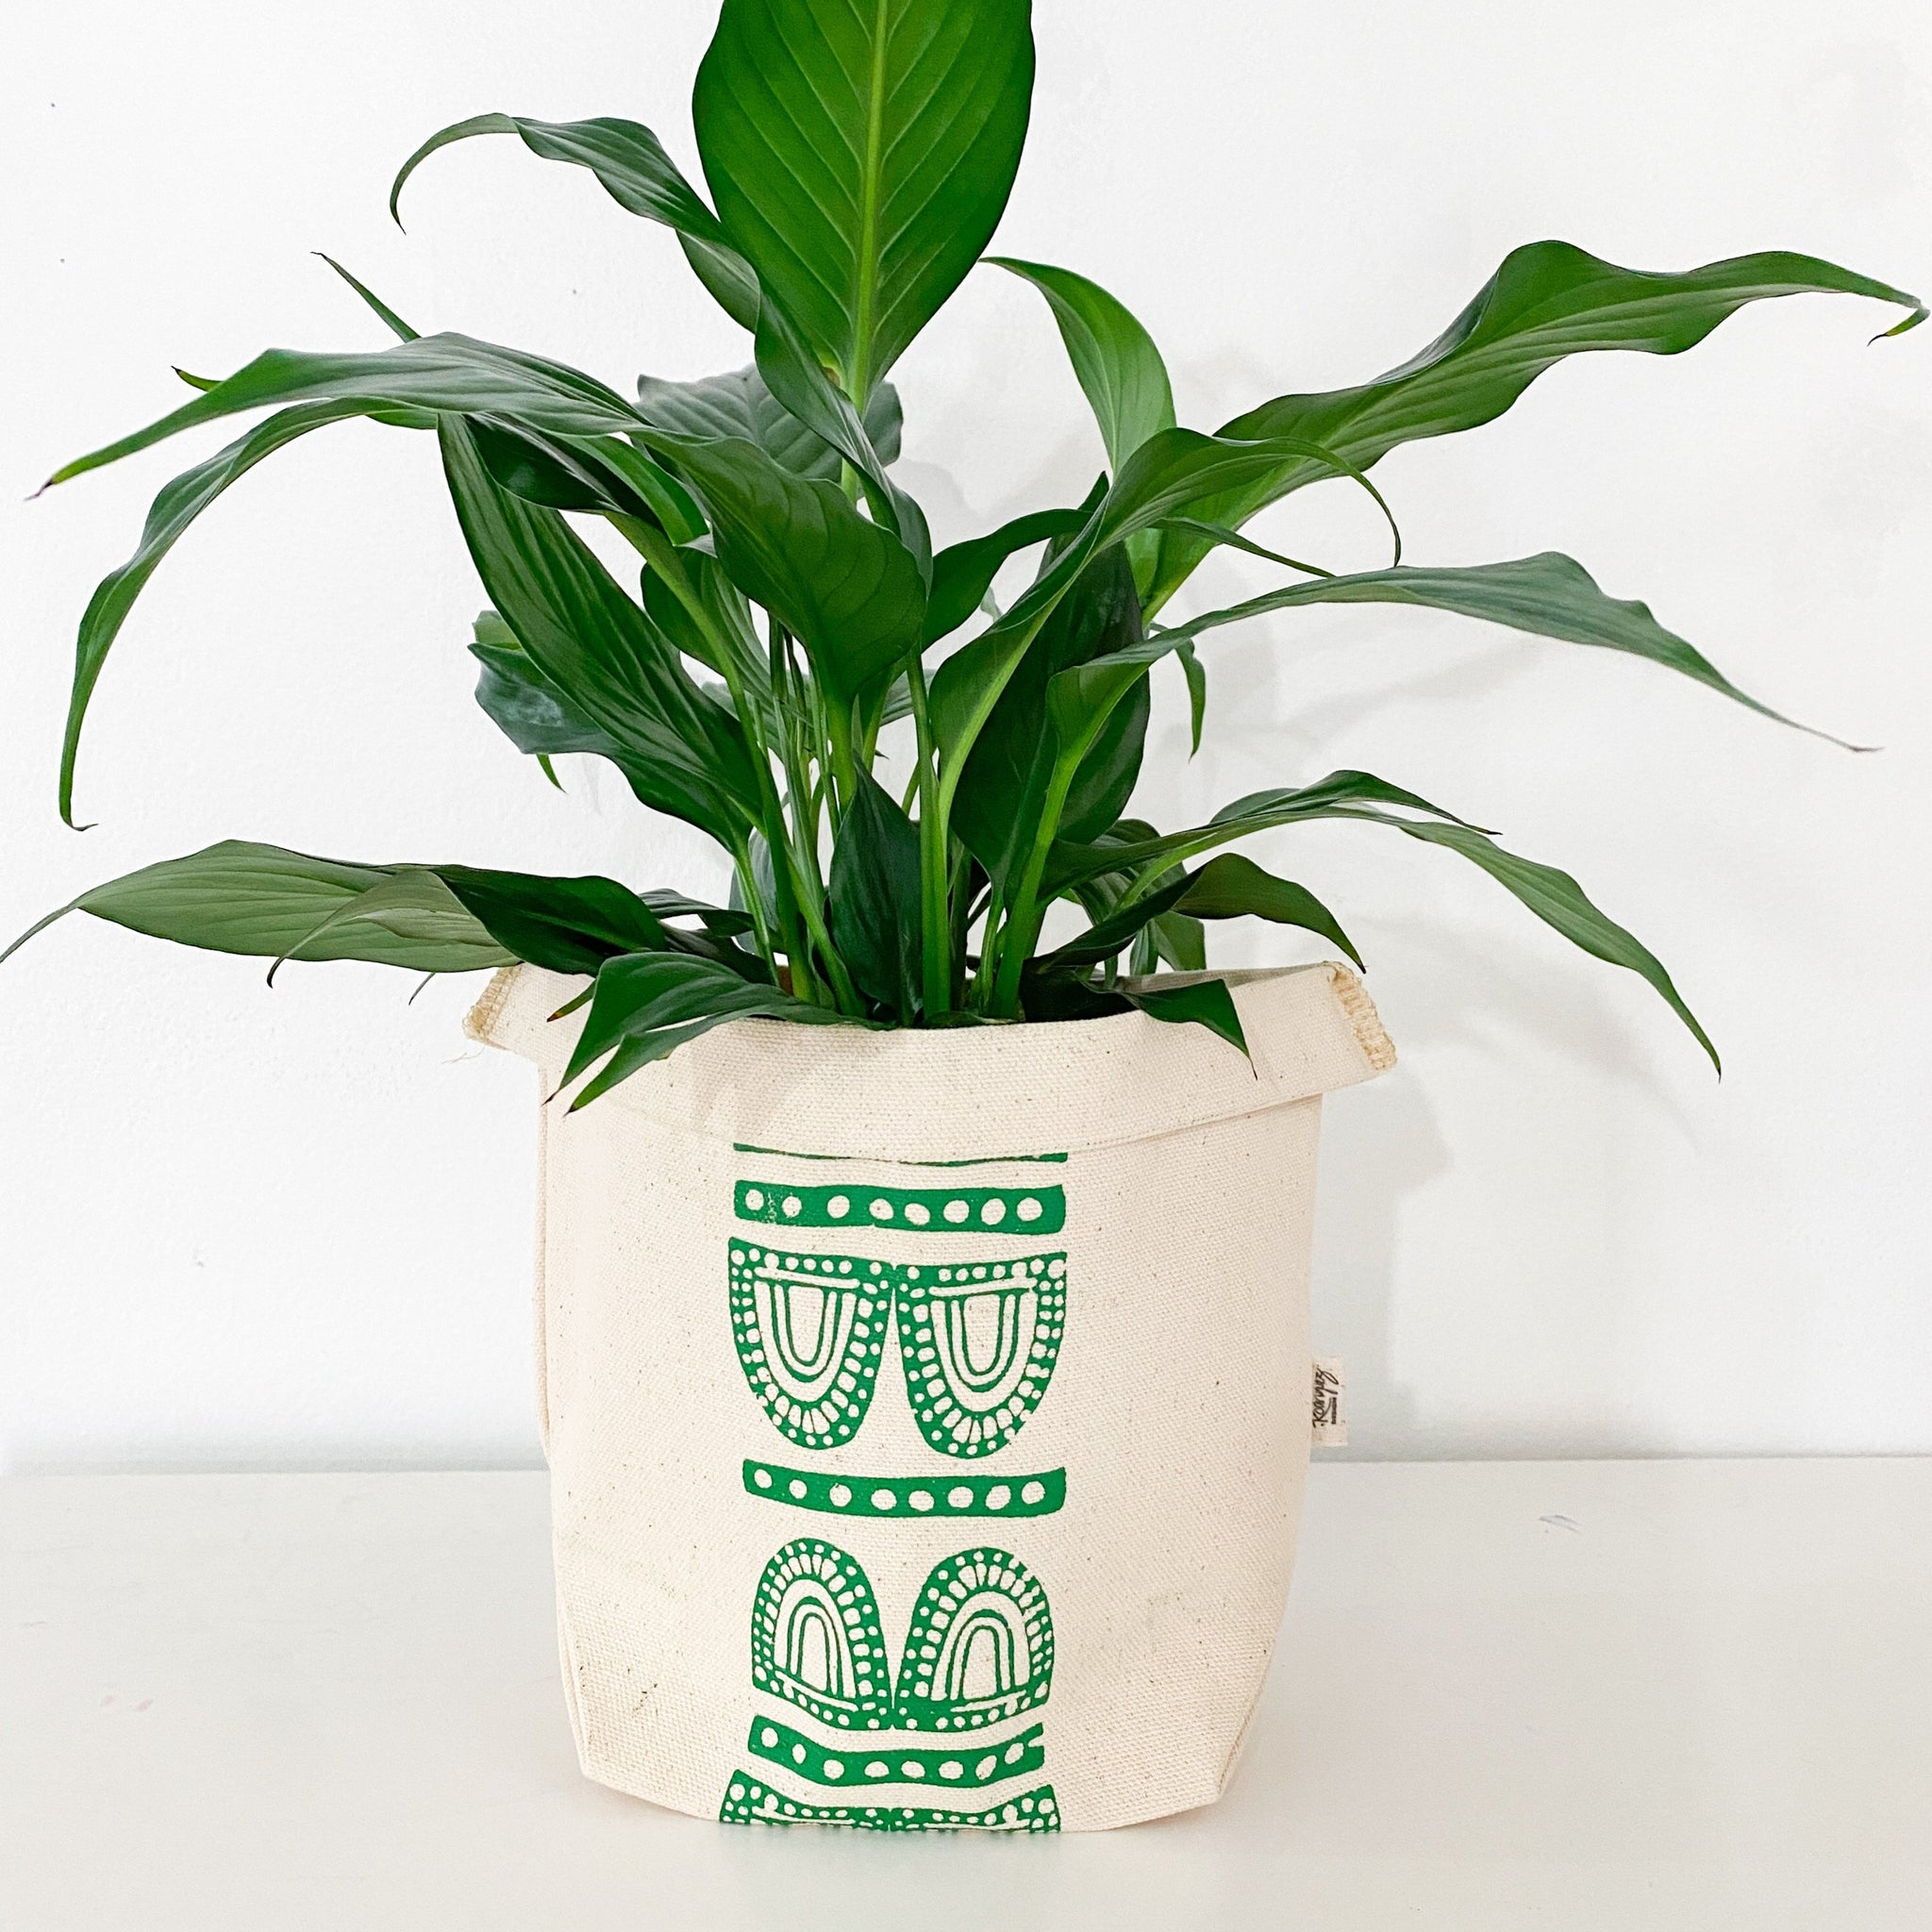 Furu Fabric Plant Pot Cover - 2 sizes